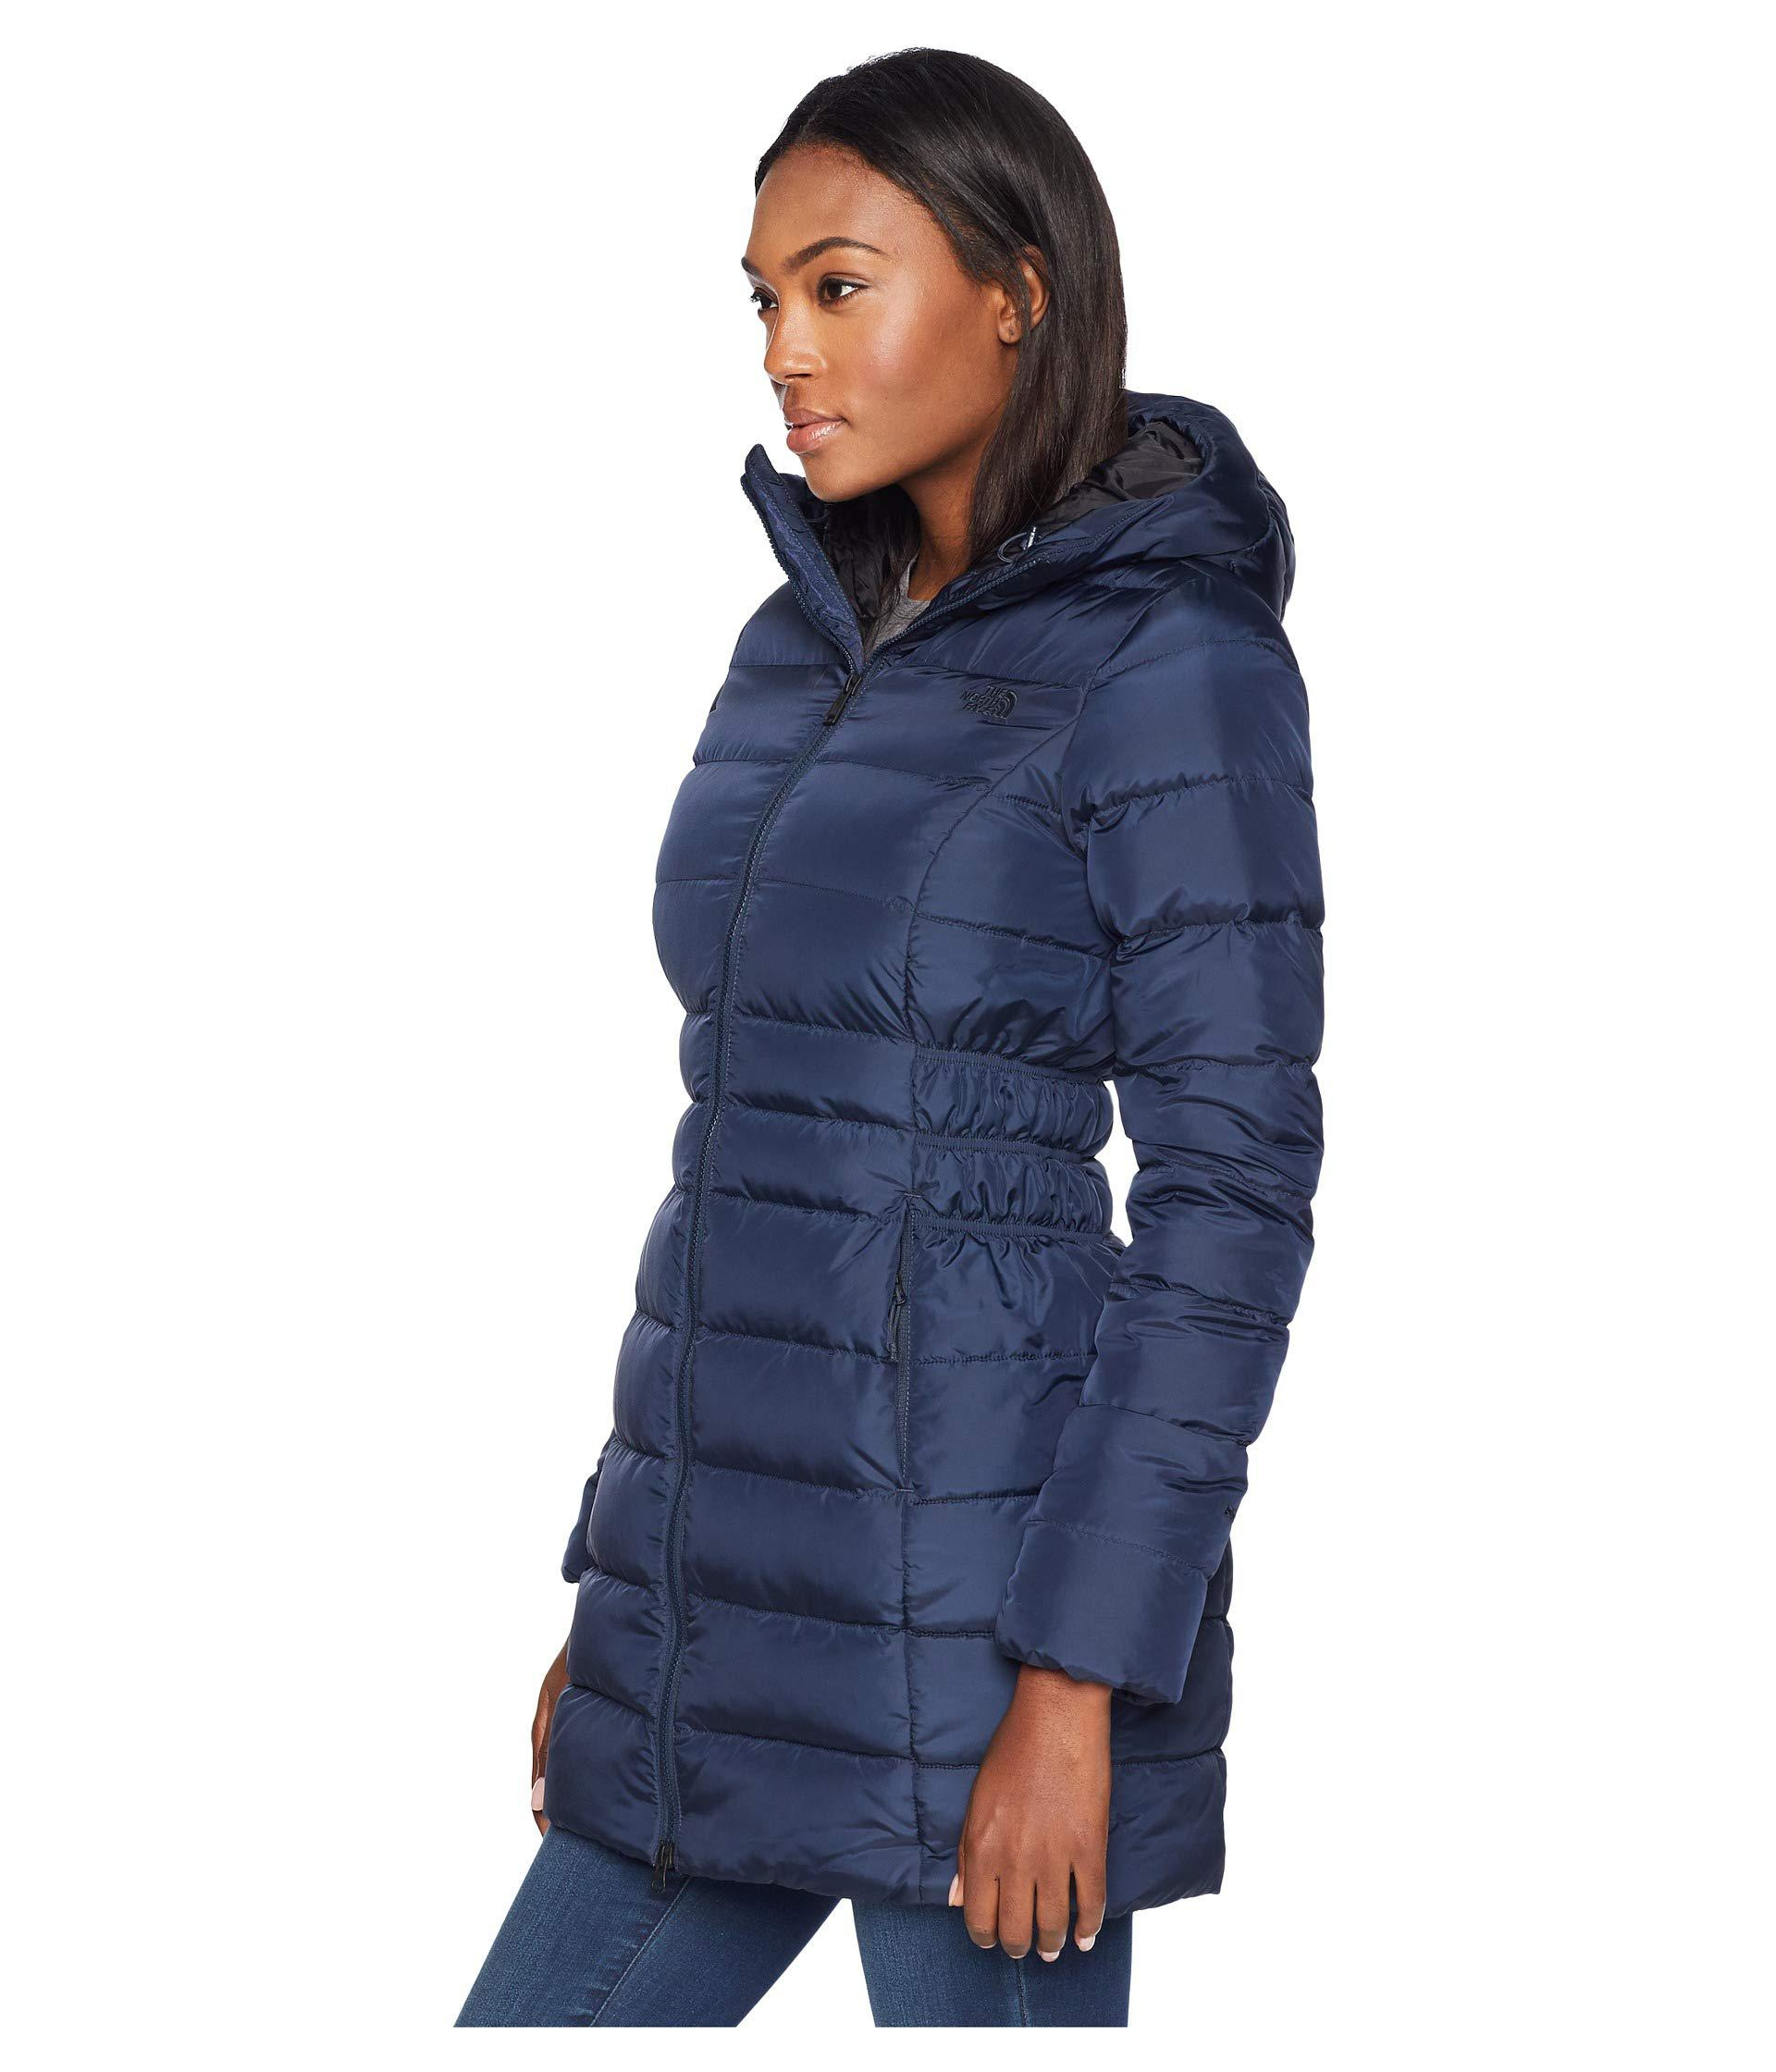 ec4351a86a Lyst - The North Face Gotham Parka Ii (vintage White) Women s Coat in Blue  - Save 31%